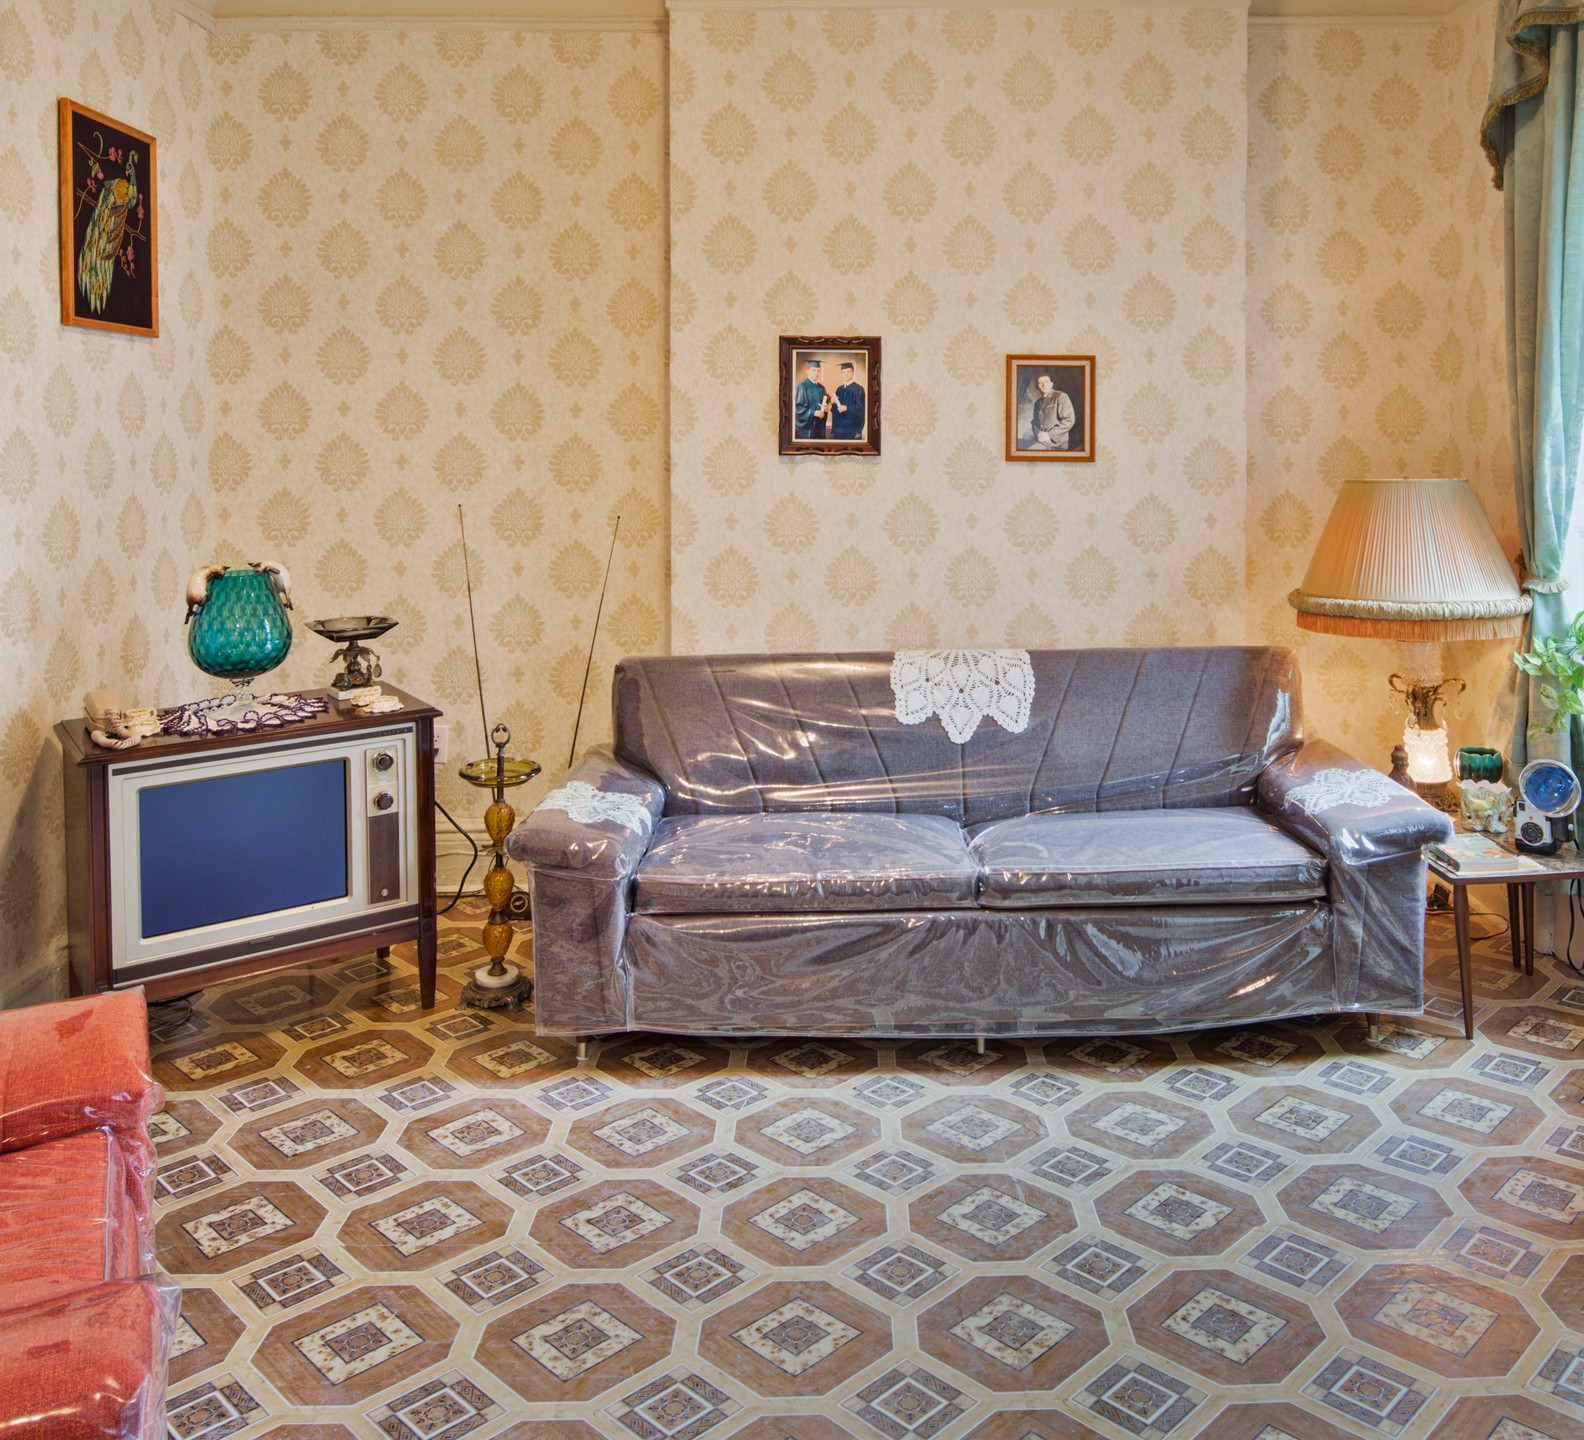 Late Night Thursday March 21 Tenement Museum